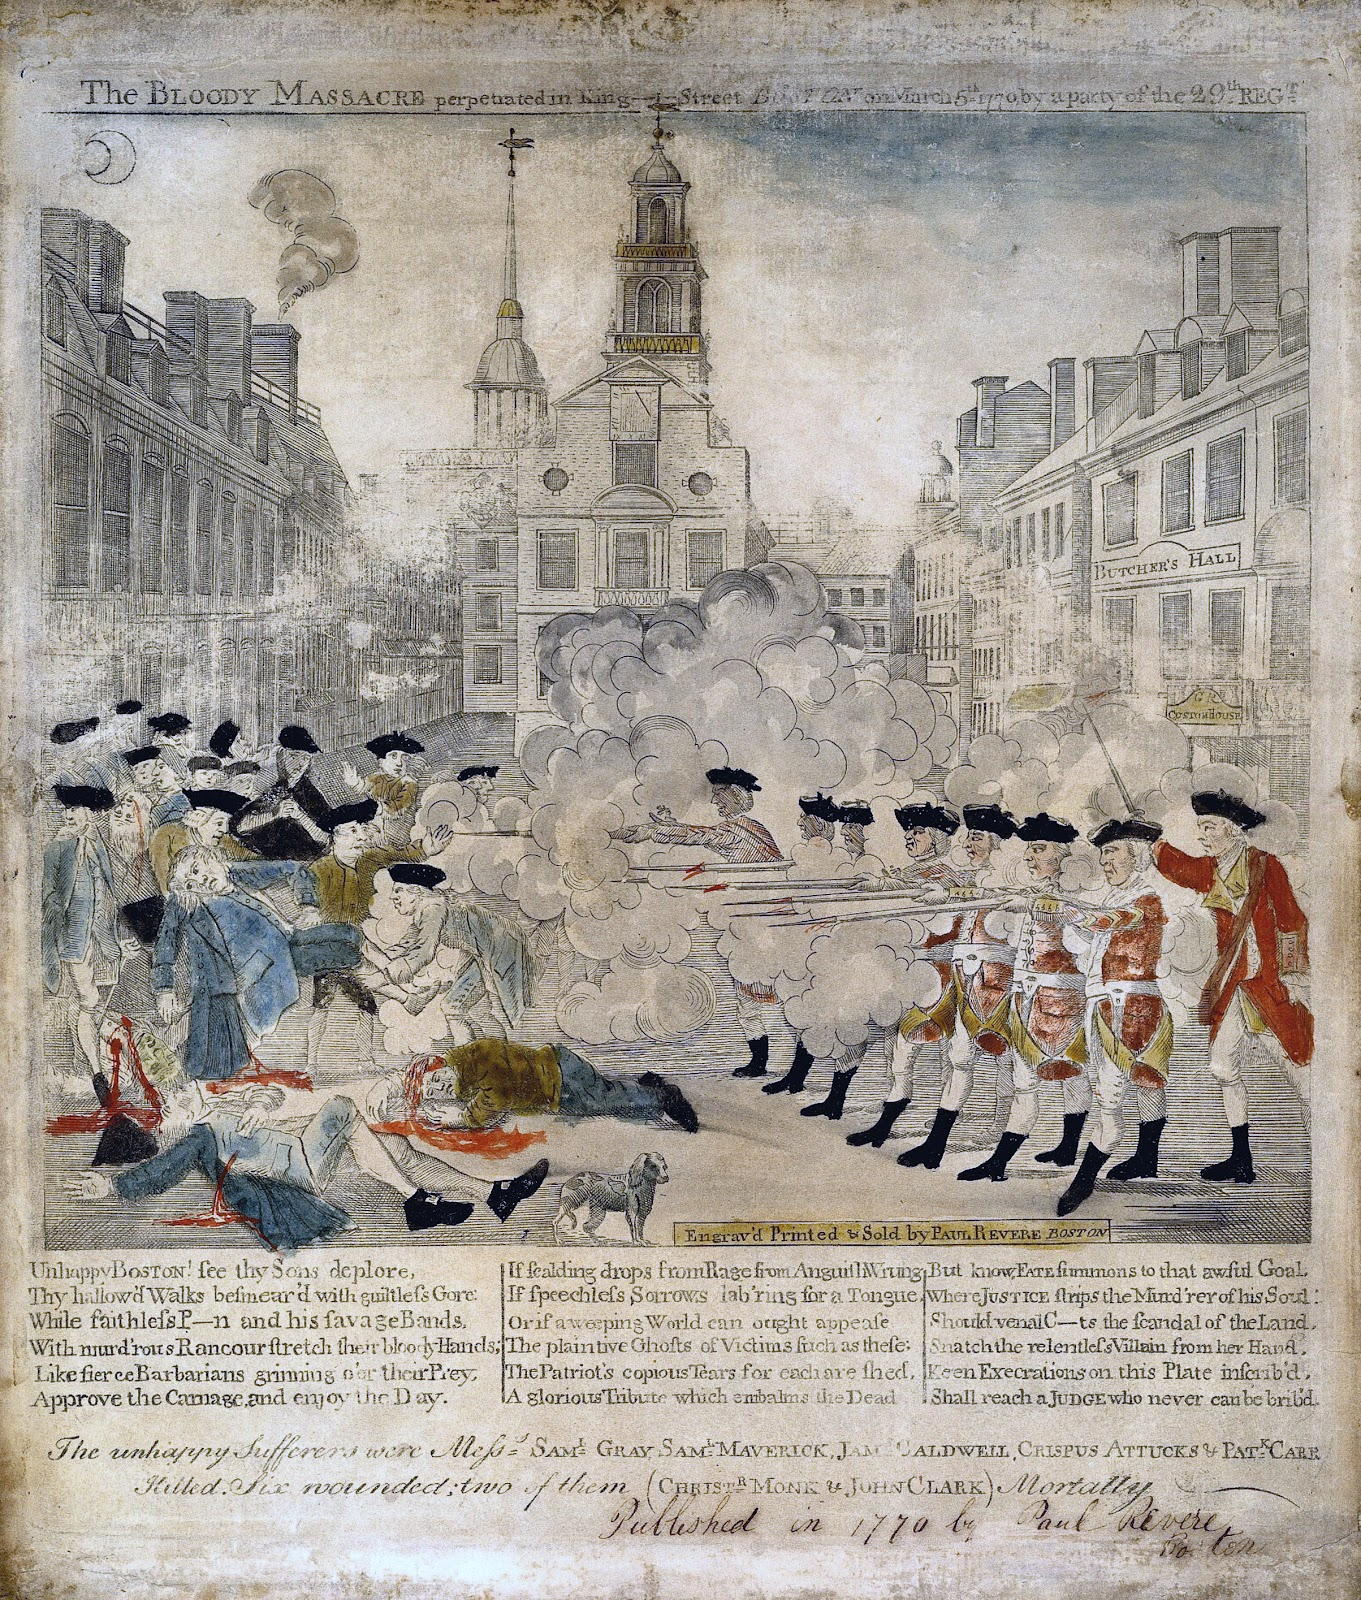 Events that led to the Boston Massacre